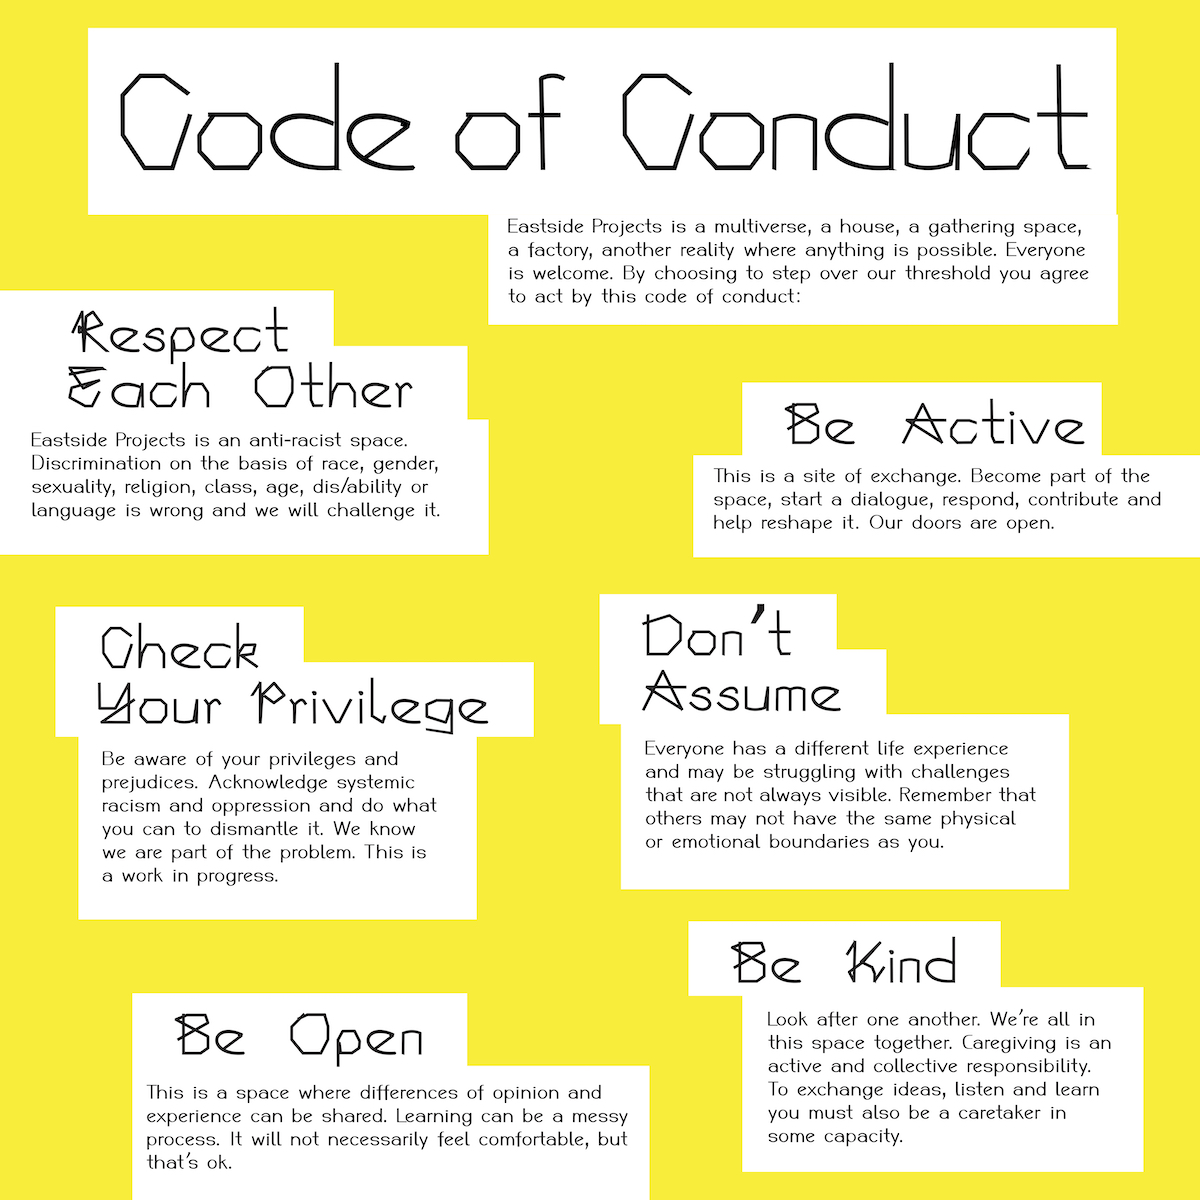 Image of Eastside Projects code of conduct in black text against a bright yellow background.